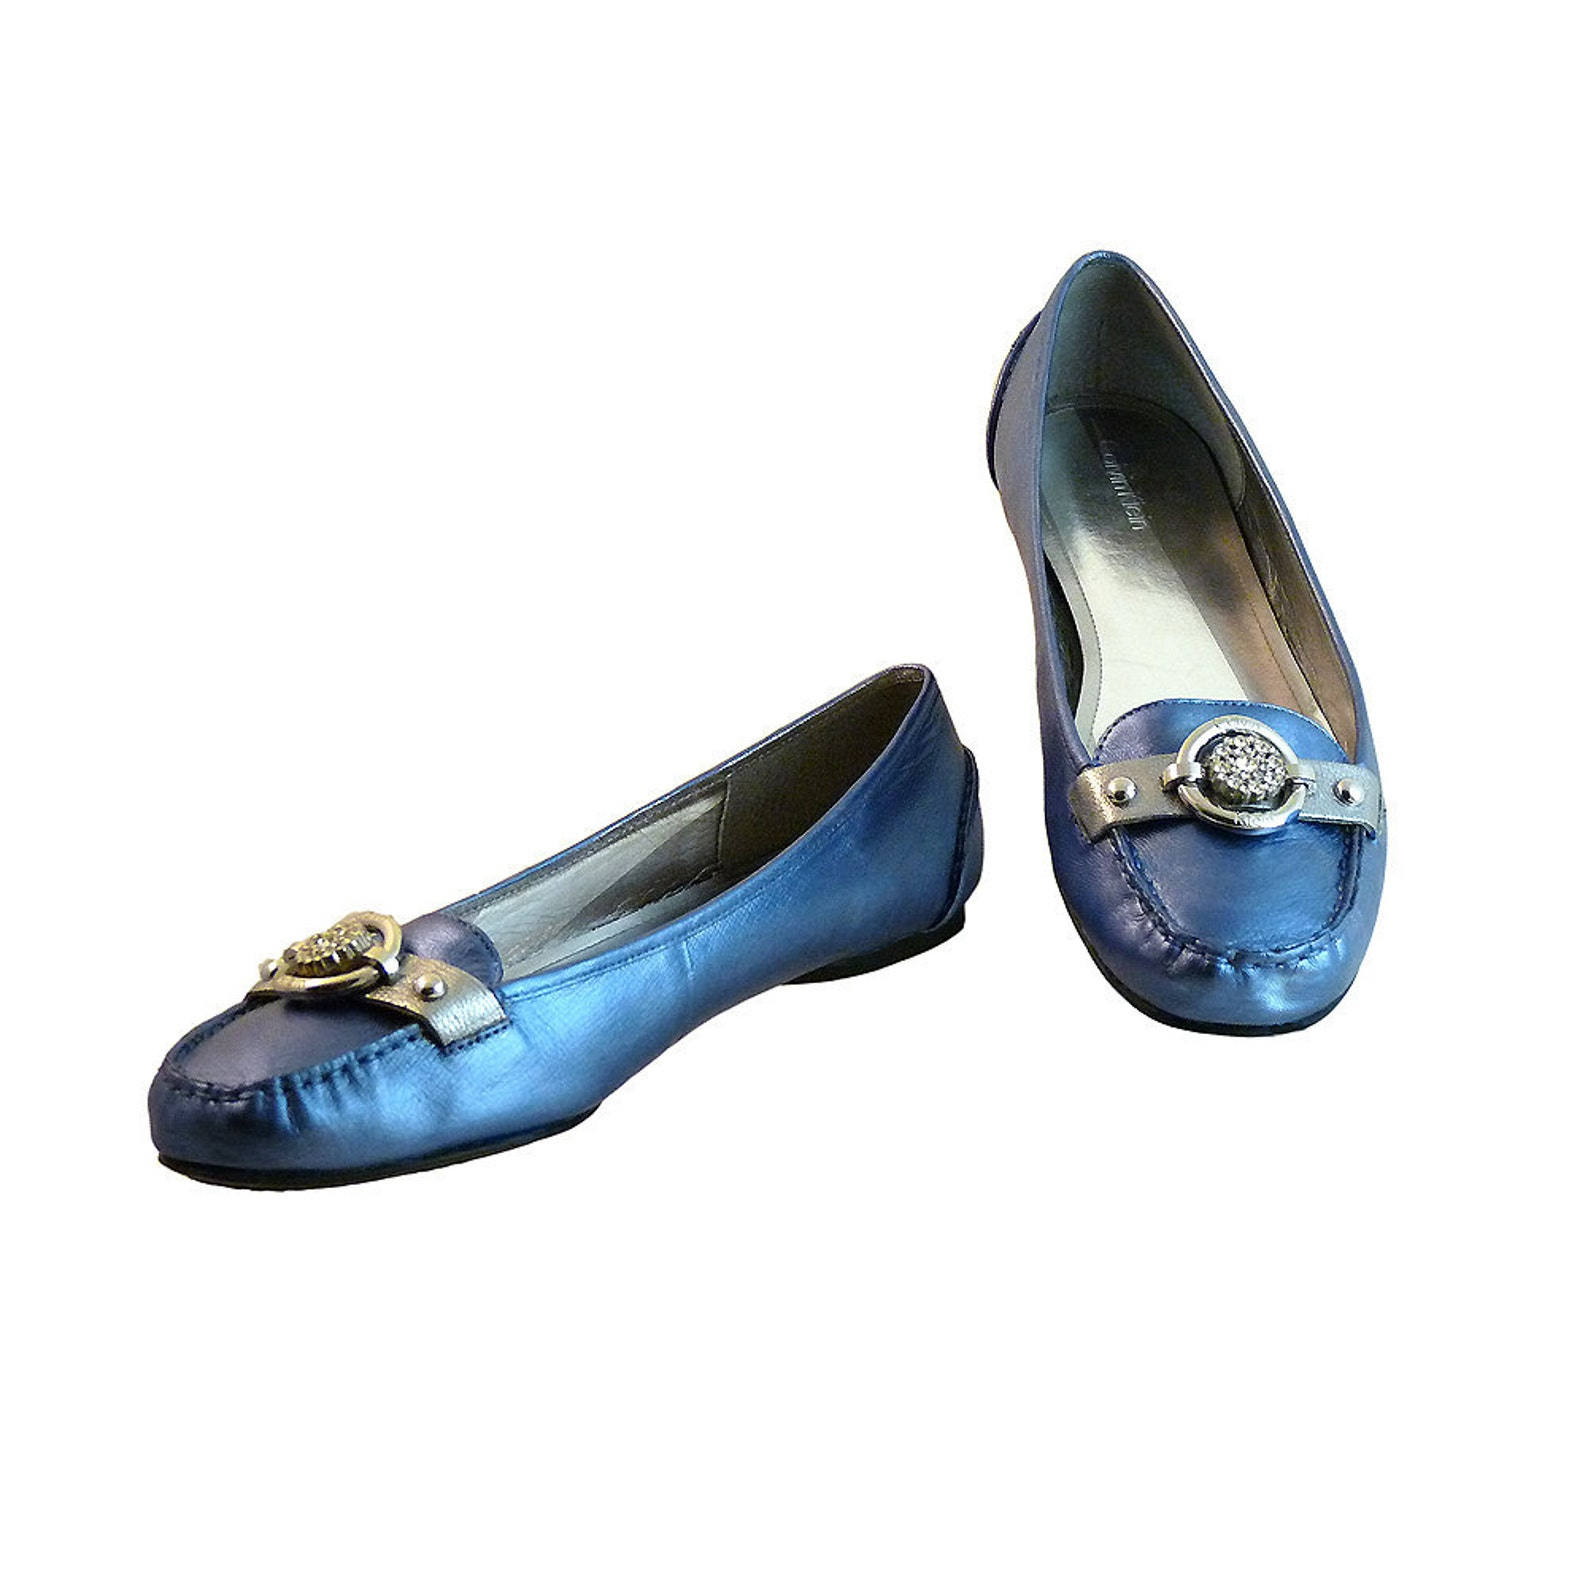 ballet flats loafers metallic blue and silver loafers w vintage rhinestones // size 10 m calvin klein leather w silver // preppy